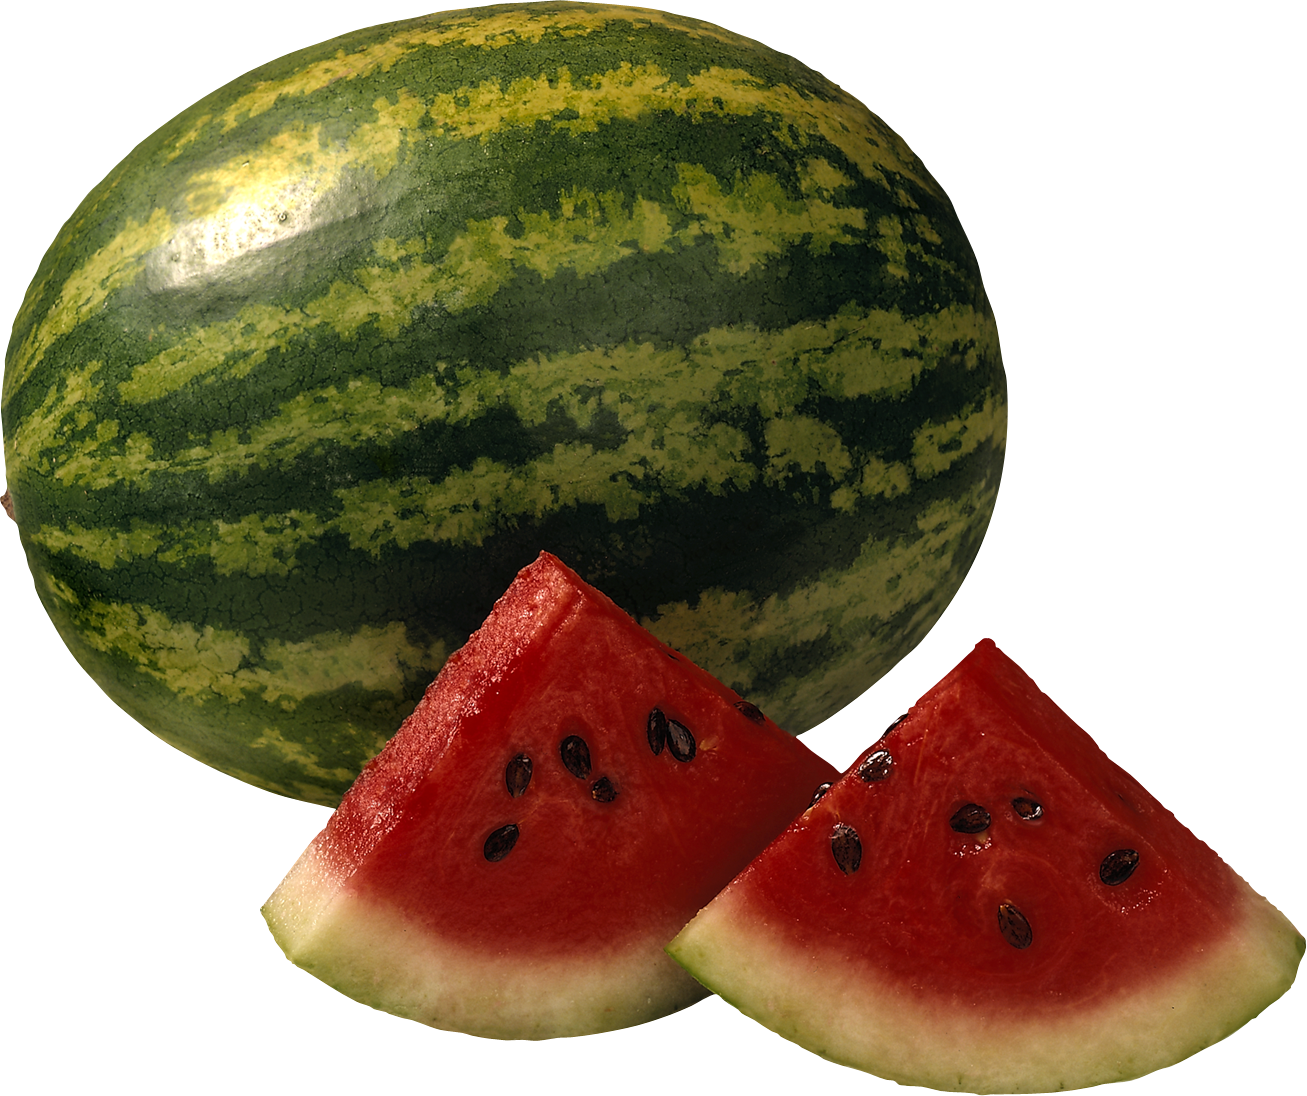 Watermelon clipart healthy snack. Twelve isolated stock photo